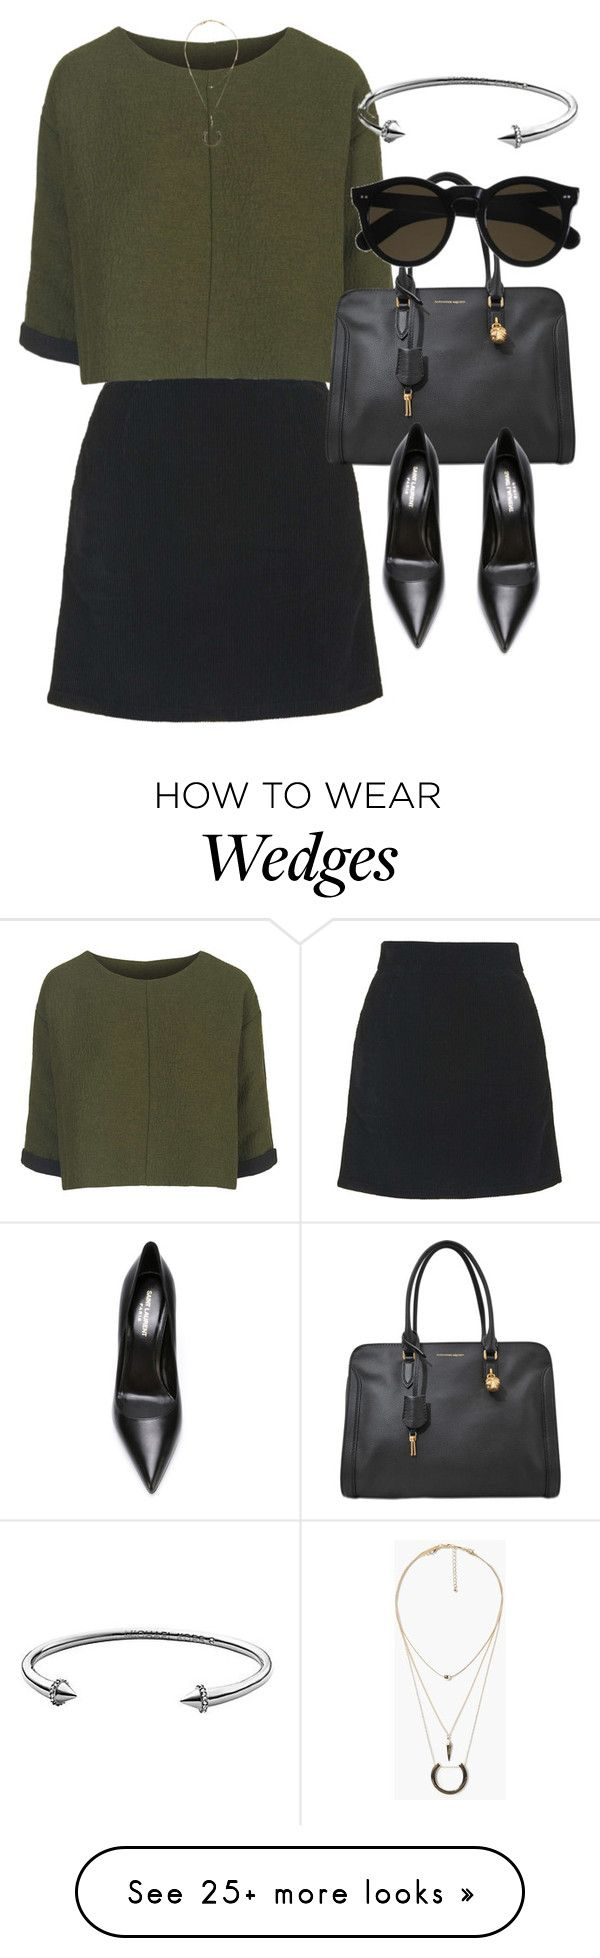 """""""Untitled #3337"""" by glitter-the-world on Polyvore featuring Topshop, MANGO, Alexander McQueen, Yves Saint Laurent, Beau Coops, Michael Kors, women's clothing, women's fashion, women and female"""